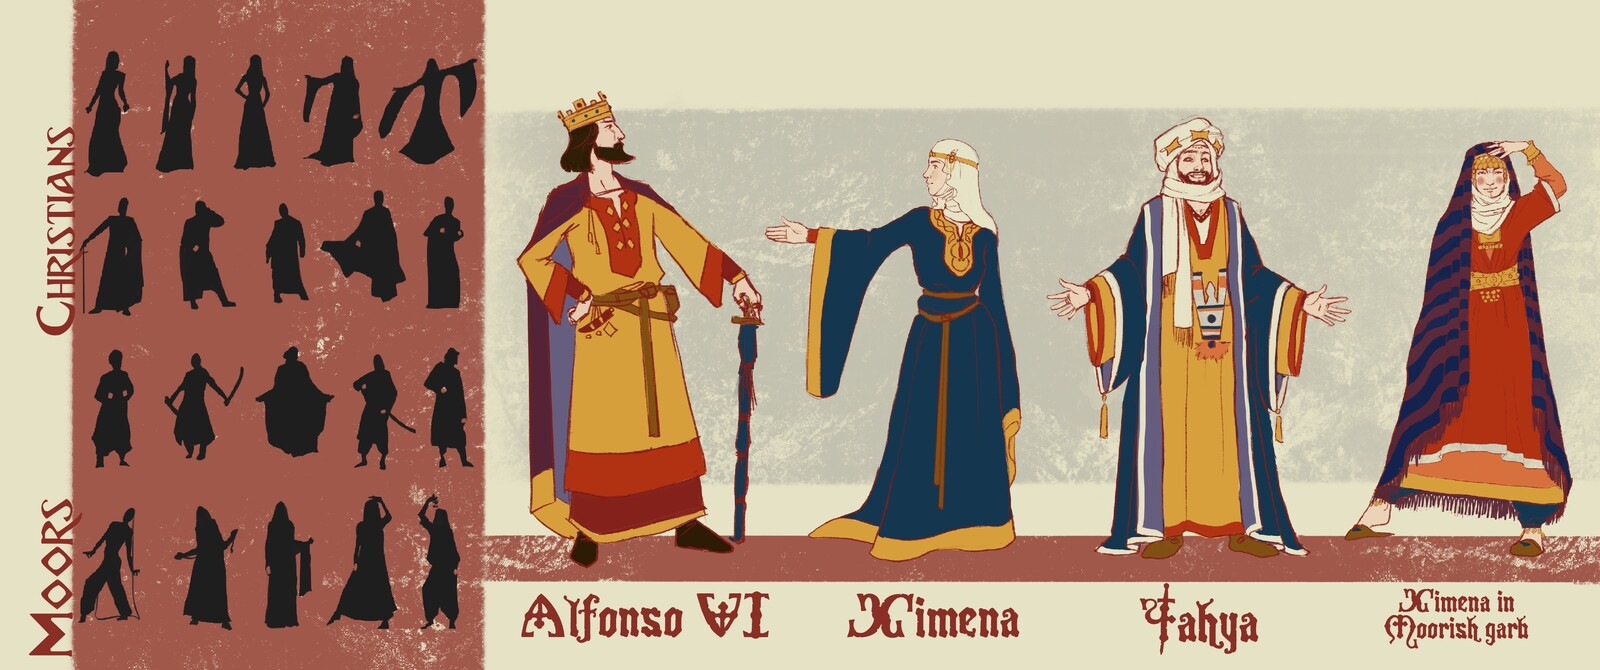 Character concepts showing the two different styles of the 11th century.